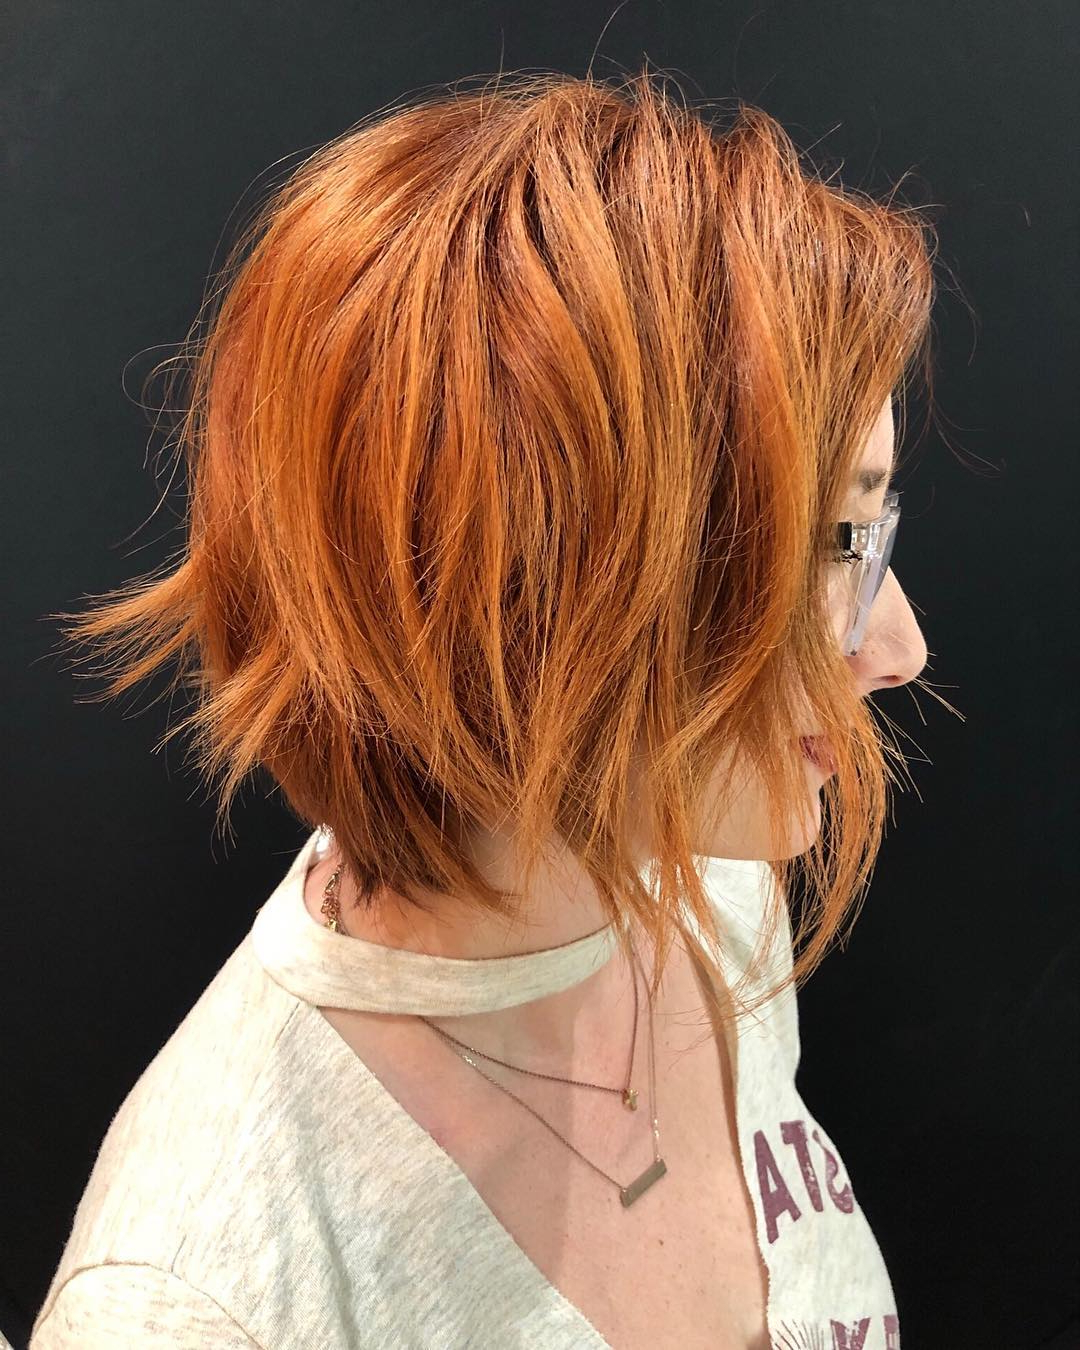 Fashionable Layered, Flipped, And Tousled Hairstyles Pertaining To Top 10 Trendy, Low Maintenance Short Layered Hairstyles 2019 (Gallery 16 of 20)